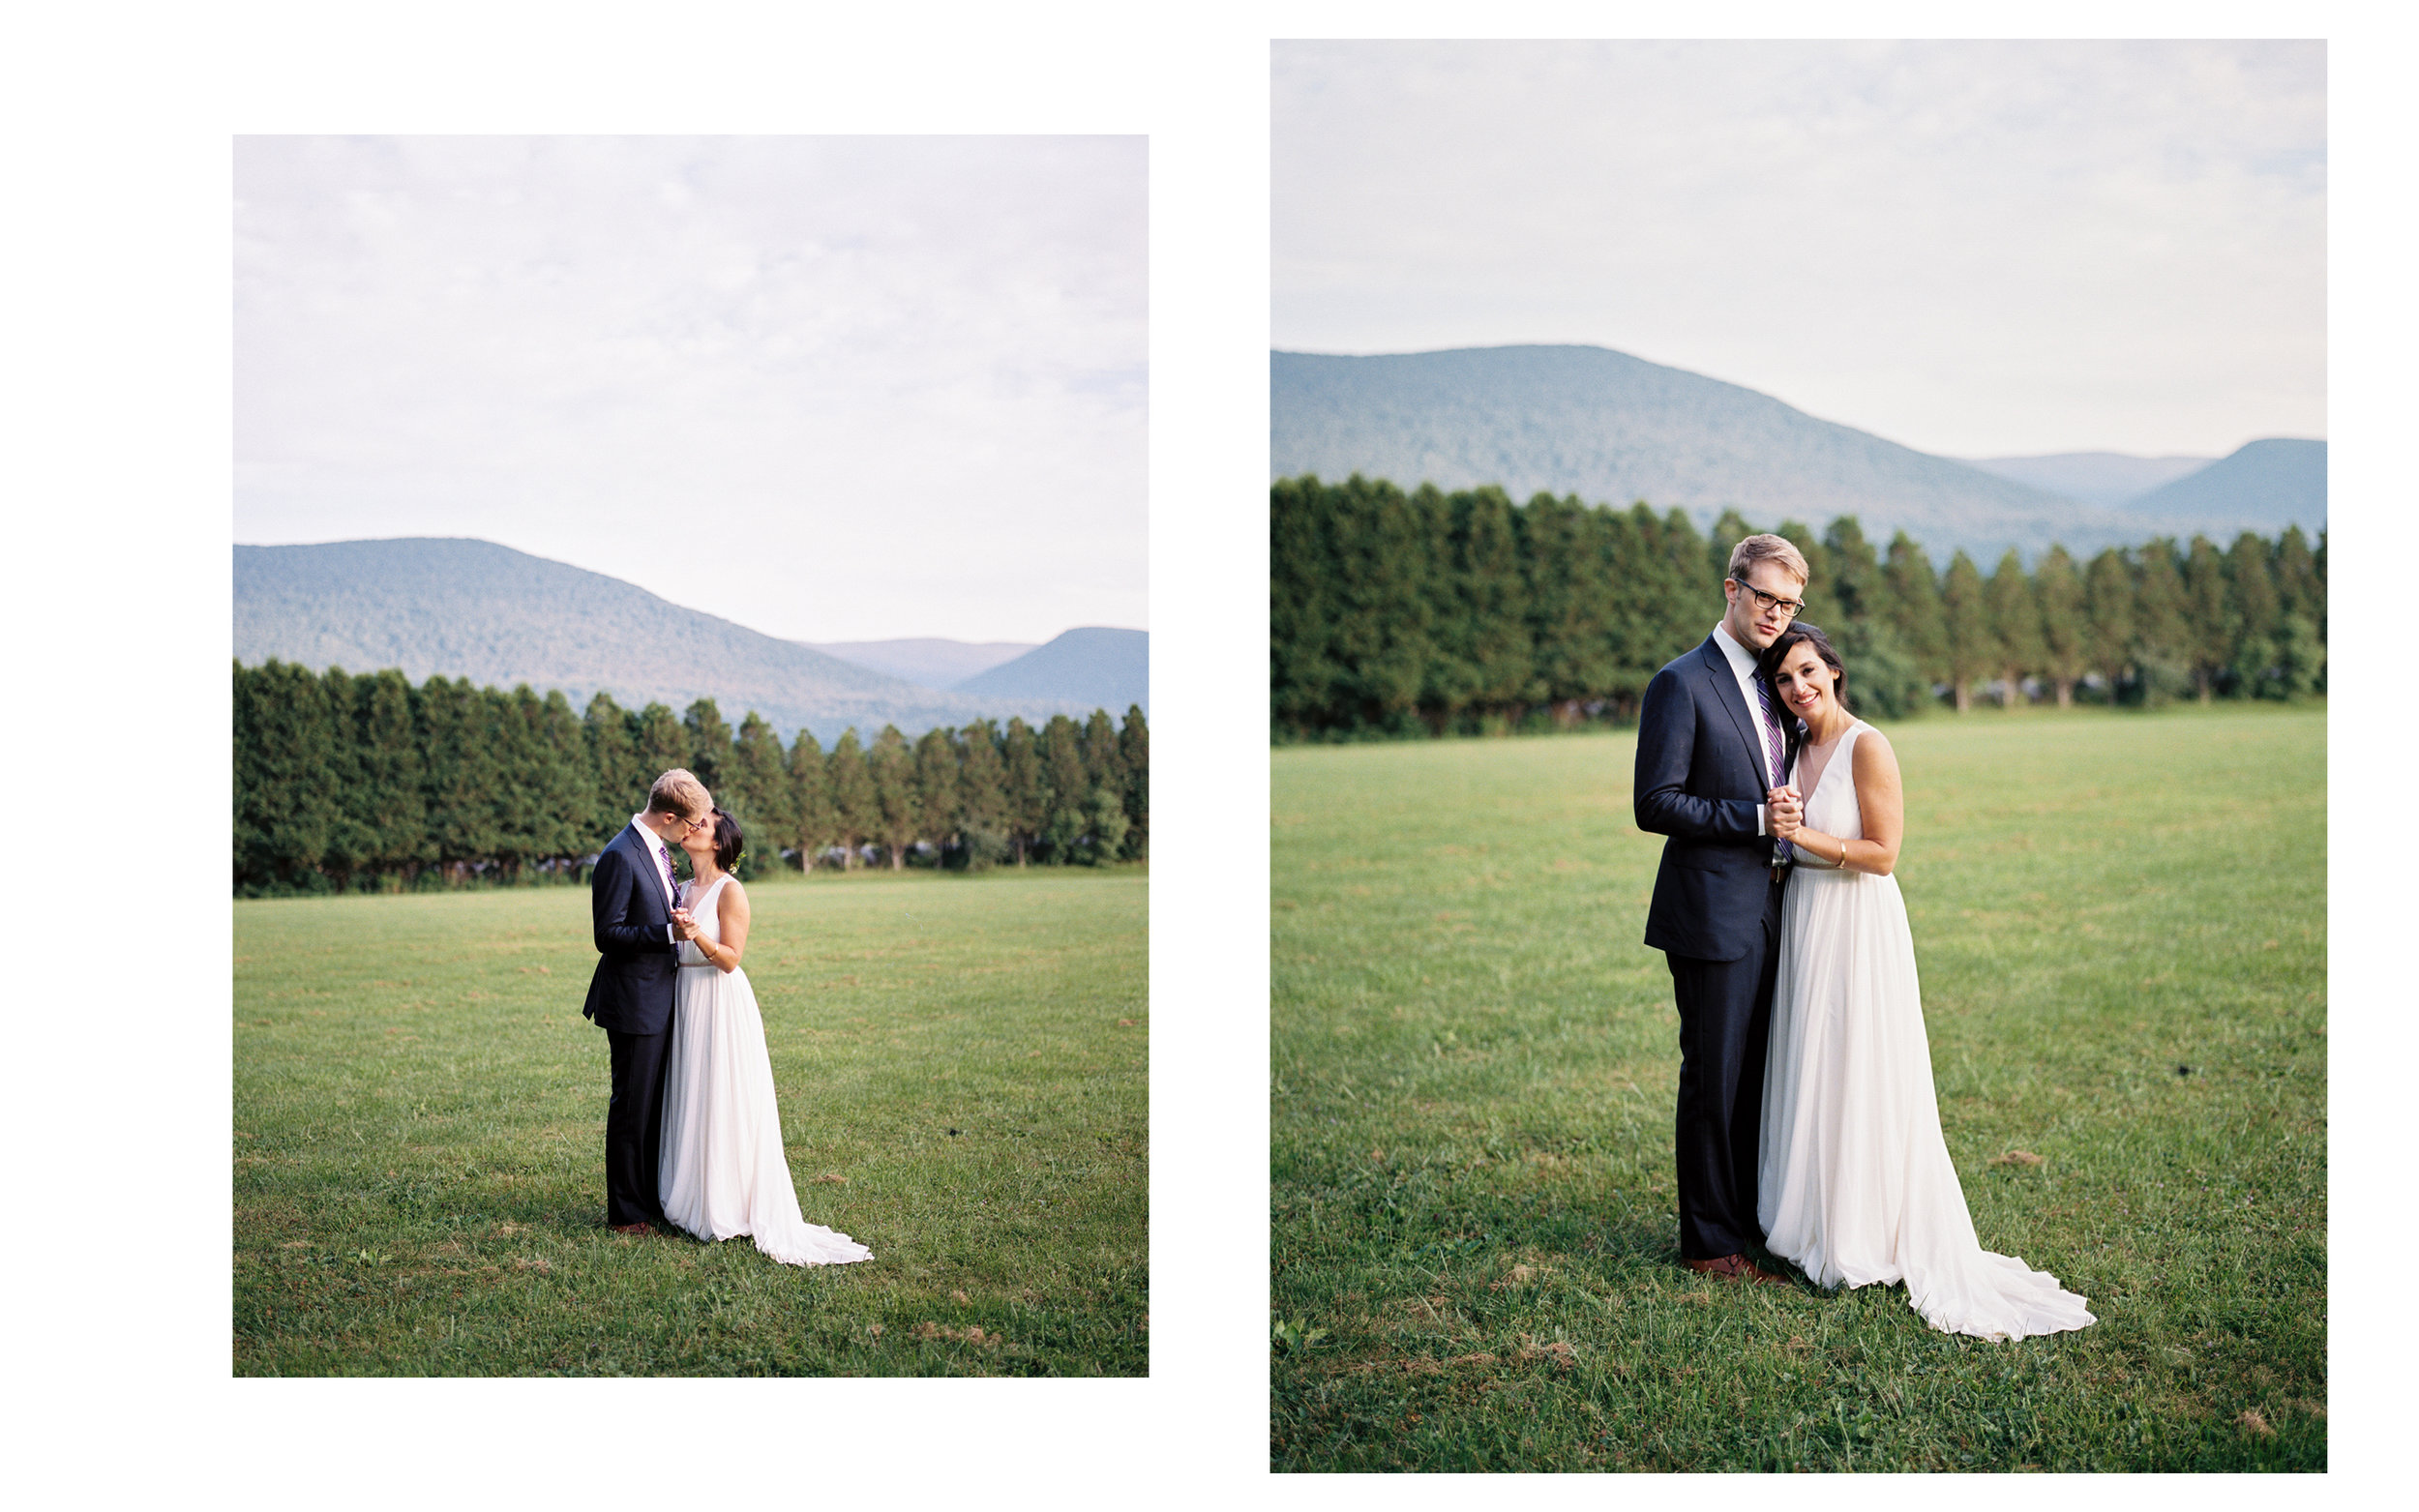 Berkshires Wedding Fine Art Wedding Photographer_Meg Haley Photographs_030.jpg